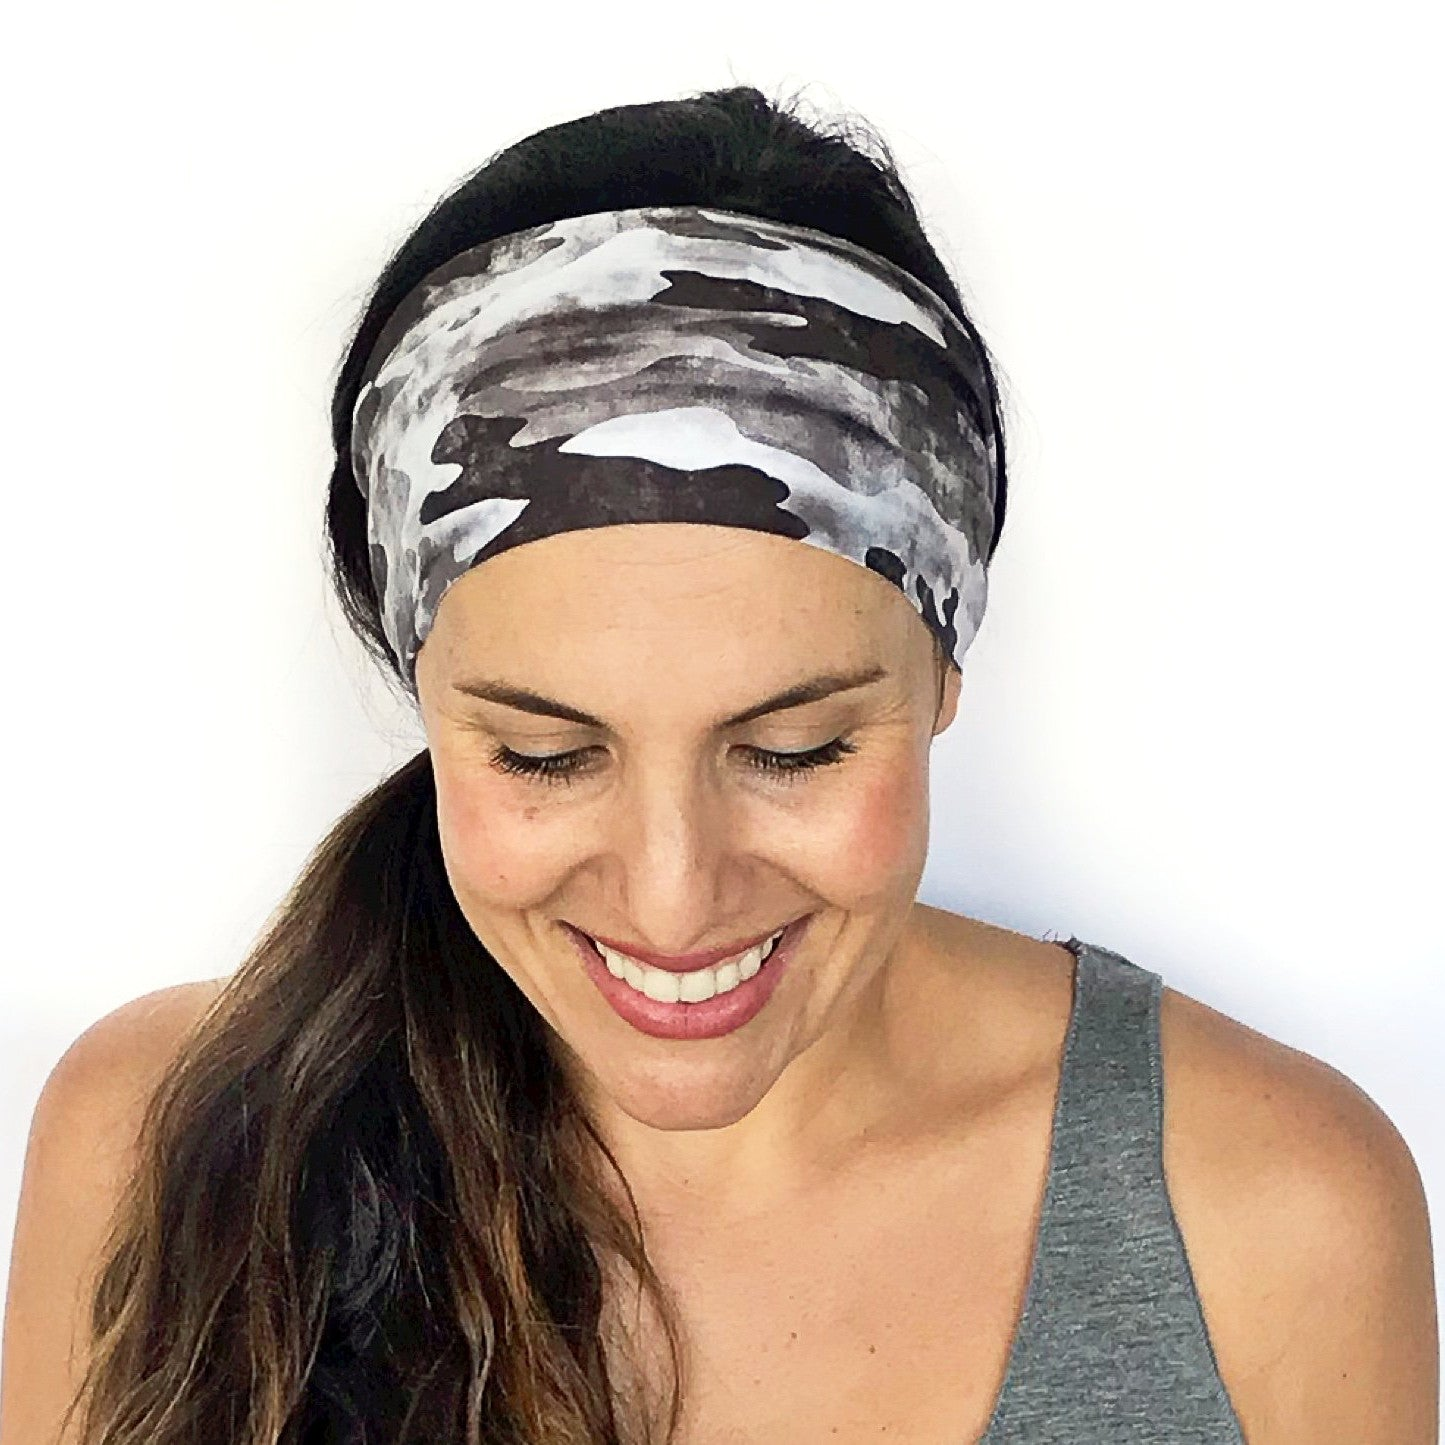 Incognito Workout Headband